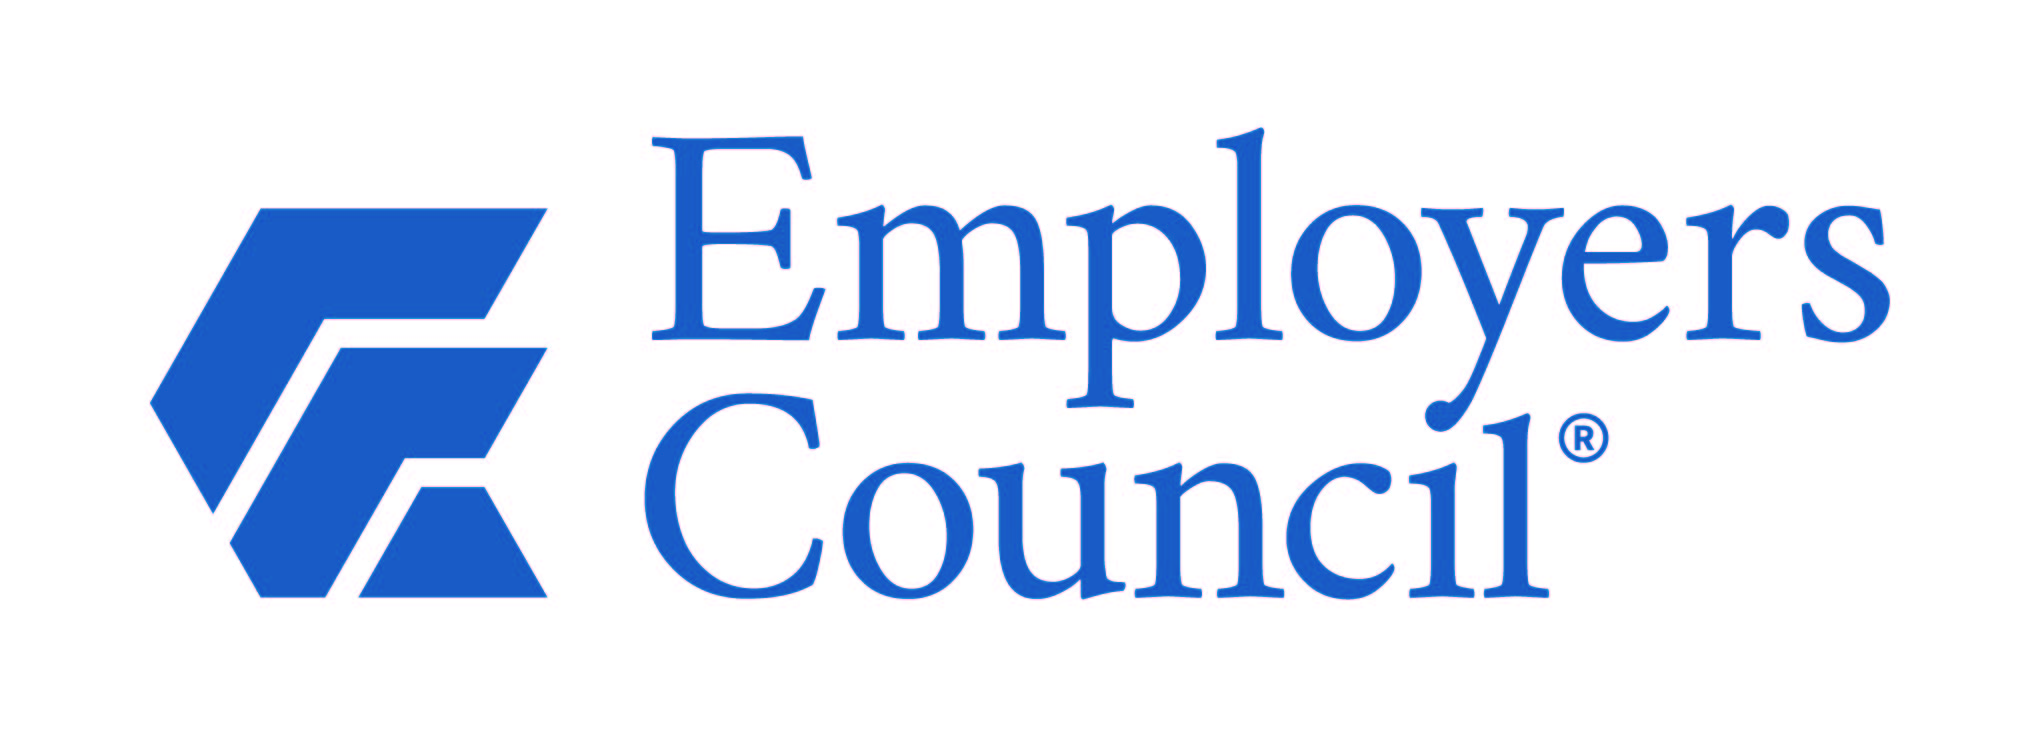 Image 1: Employers Council